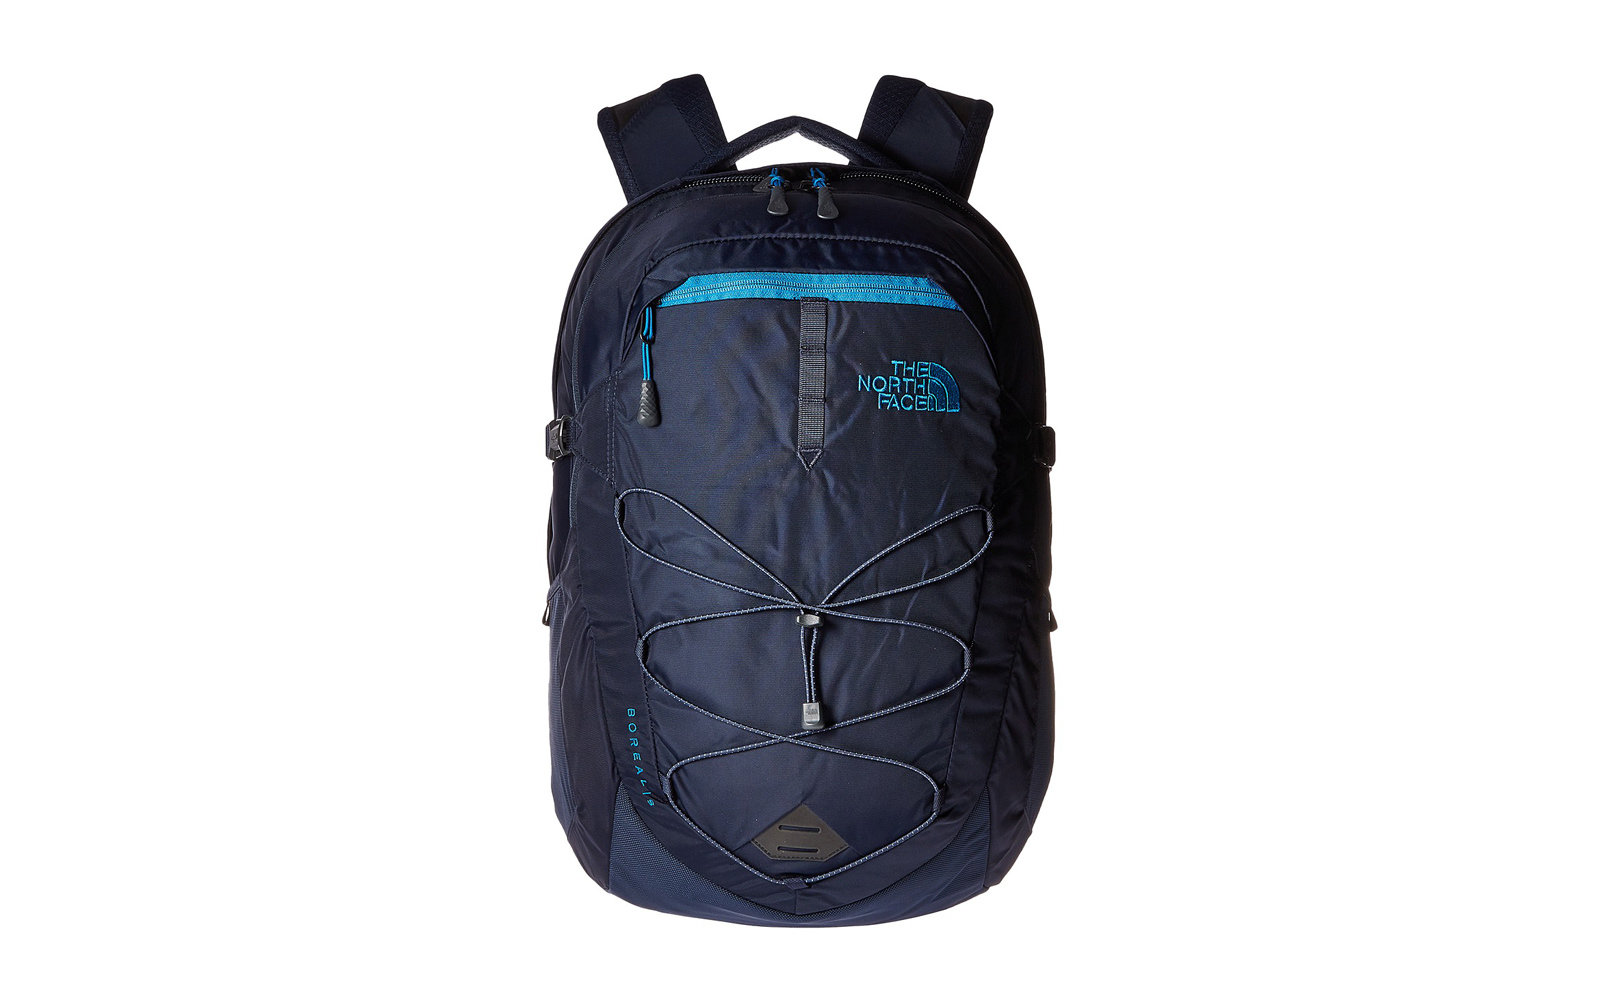 6b76da74c2d5a9 The Best Travel Backpacks for Men 2017